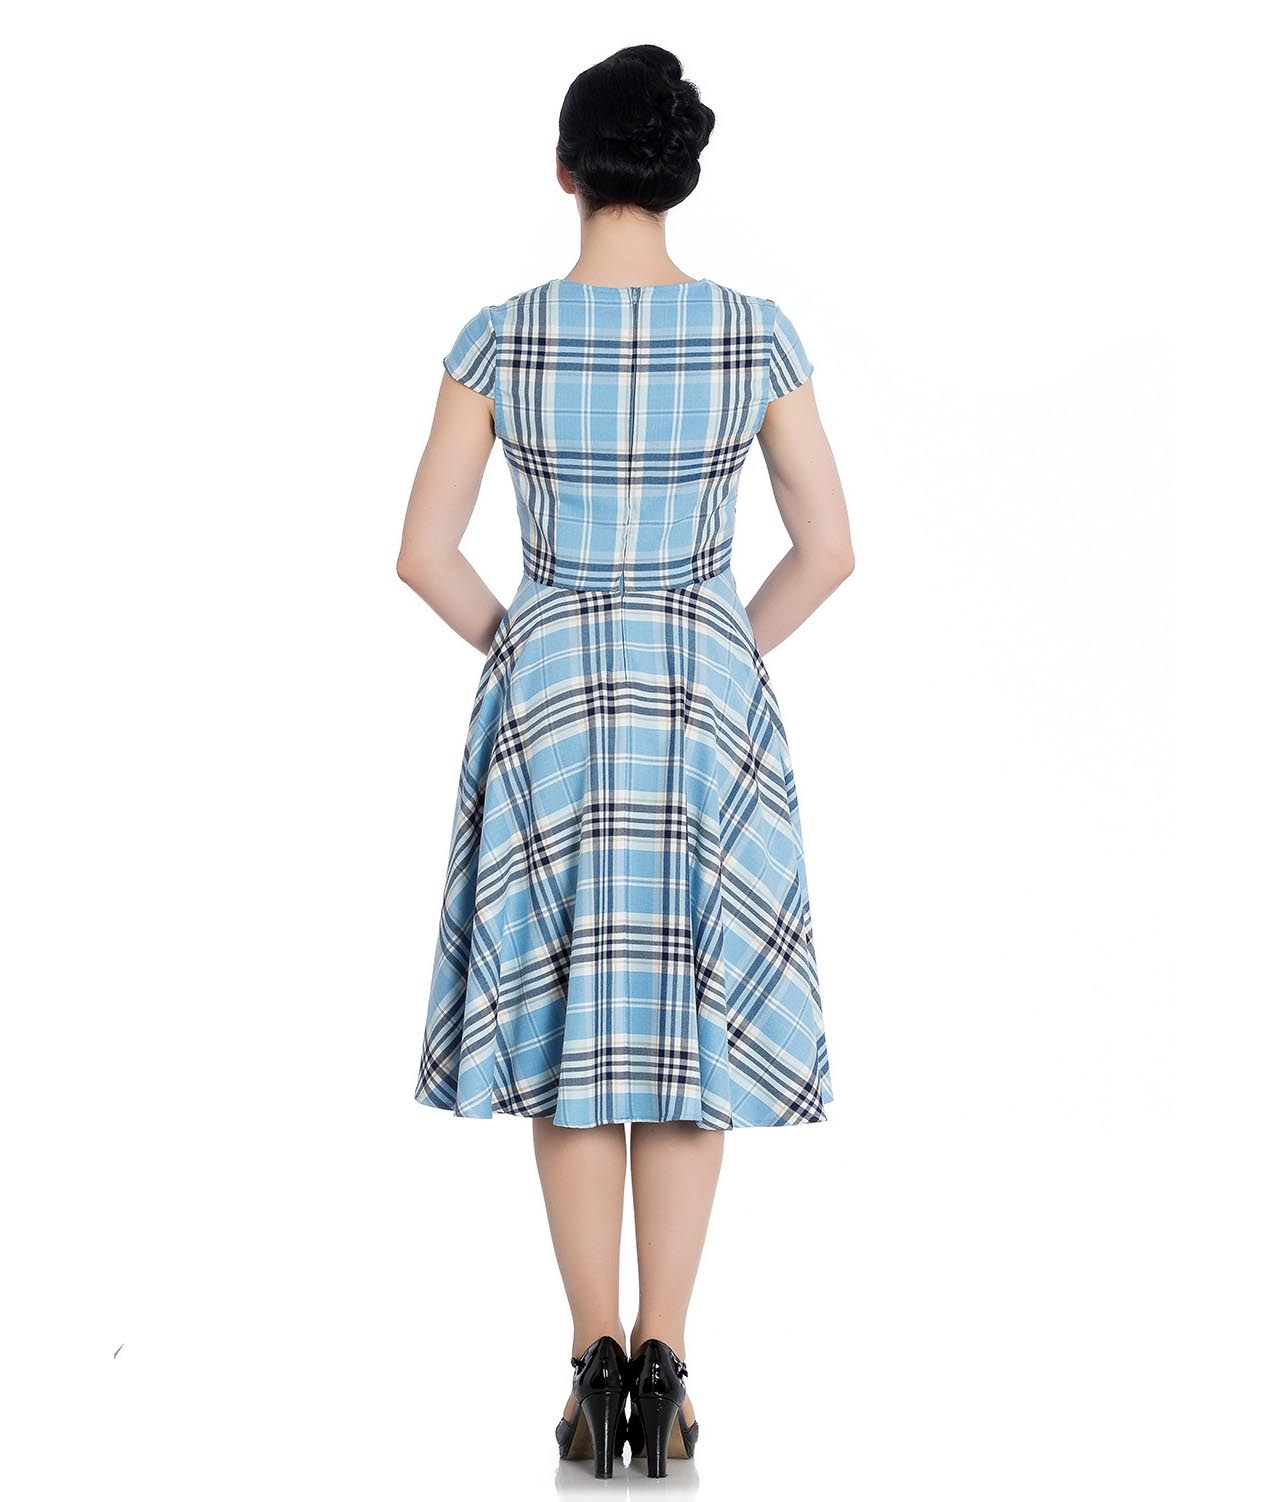 Hell-Bunny-Pinup-50s-Dress-ABERDEEN-Hogmony-Sky-Blue-amp-White-Tartan-All-Sizes thumbnail 21